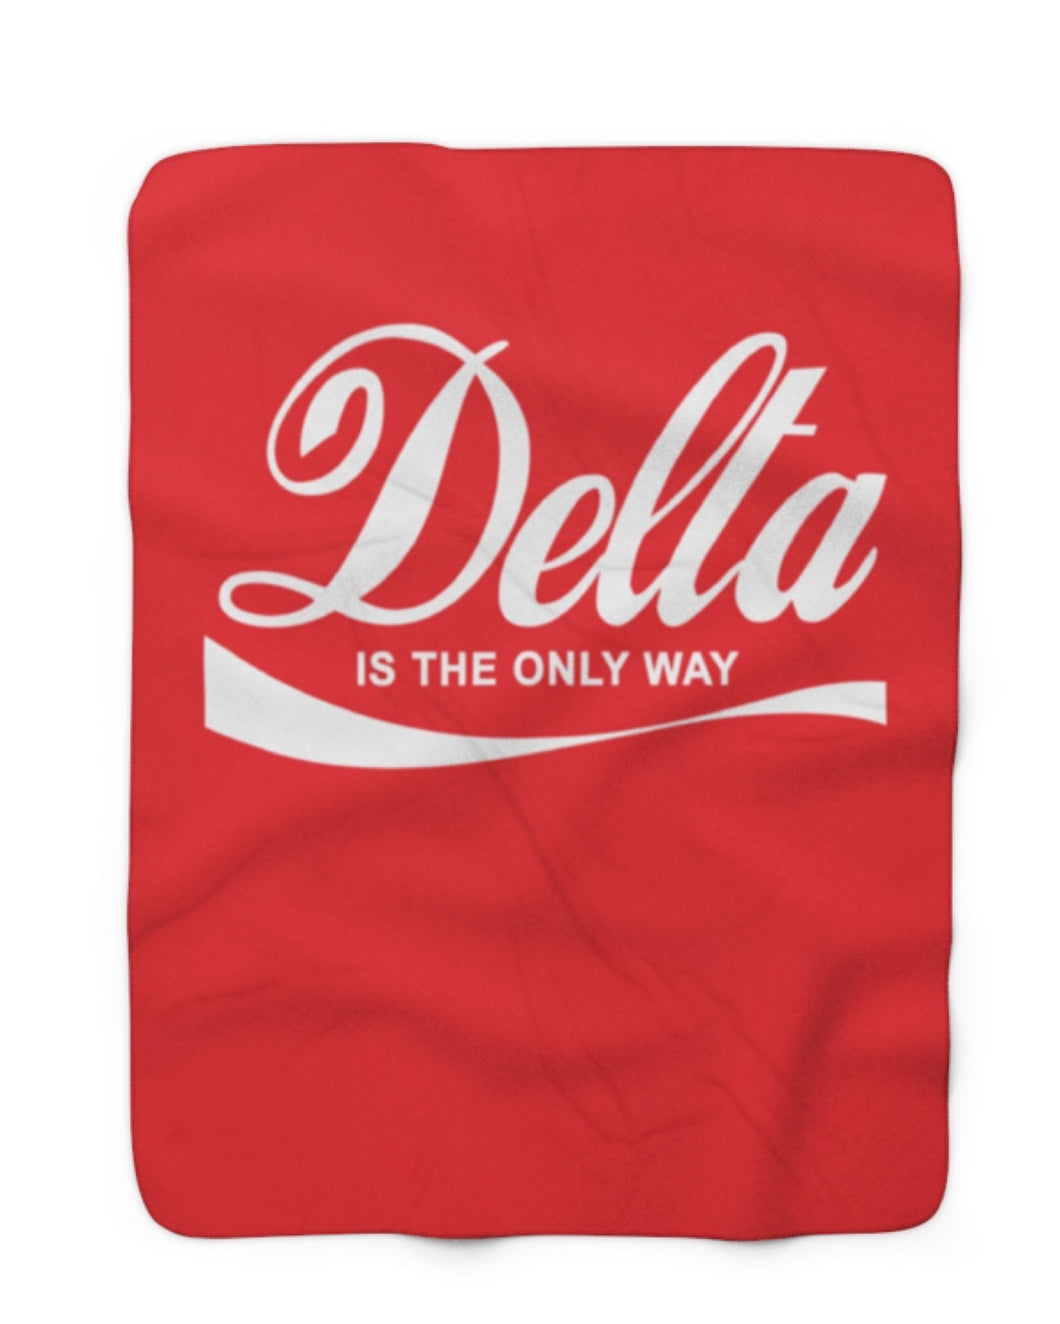 Delta Is The Only Way - Blanket